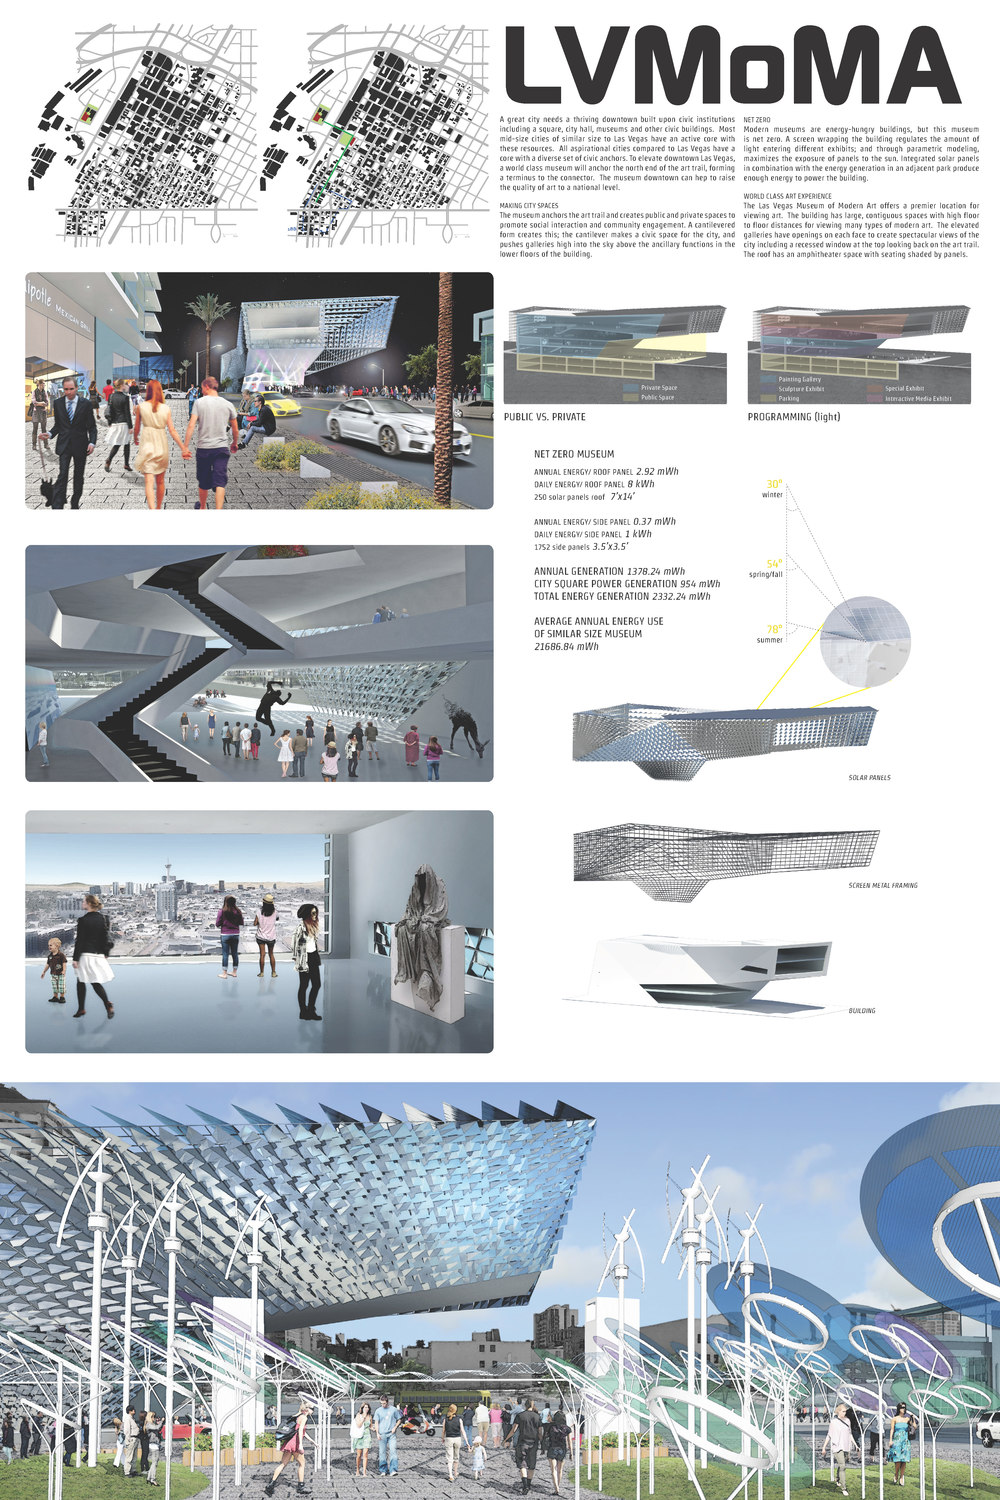 Presentation Board for a proposed Las Vegas Museum of Modern Art to anchor the 'Art Trail' from the 18B to the City Hall. Noted for citation award by the AIA Las Vegas.  Esther Garcia, project manager/lead.